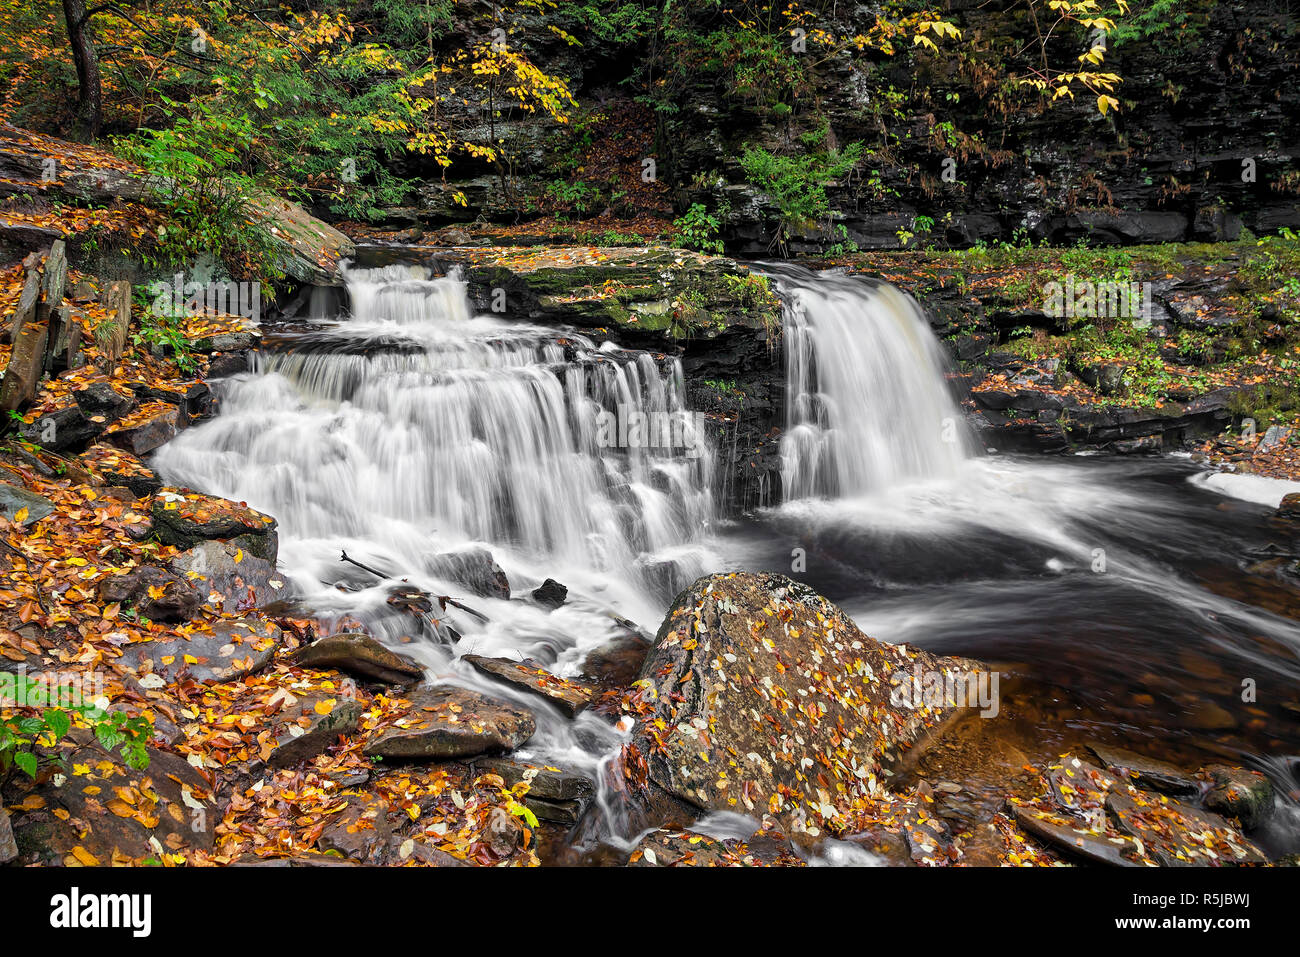 Cayuga Falls, a beautiful split waterfall in Ganoga Glen at Pennsylvania's Ricketts Glen State Park, flows through an autumn landscape blanketed in au Stock Photo